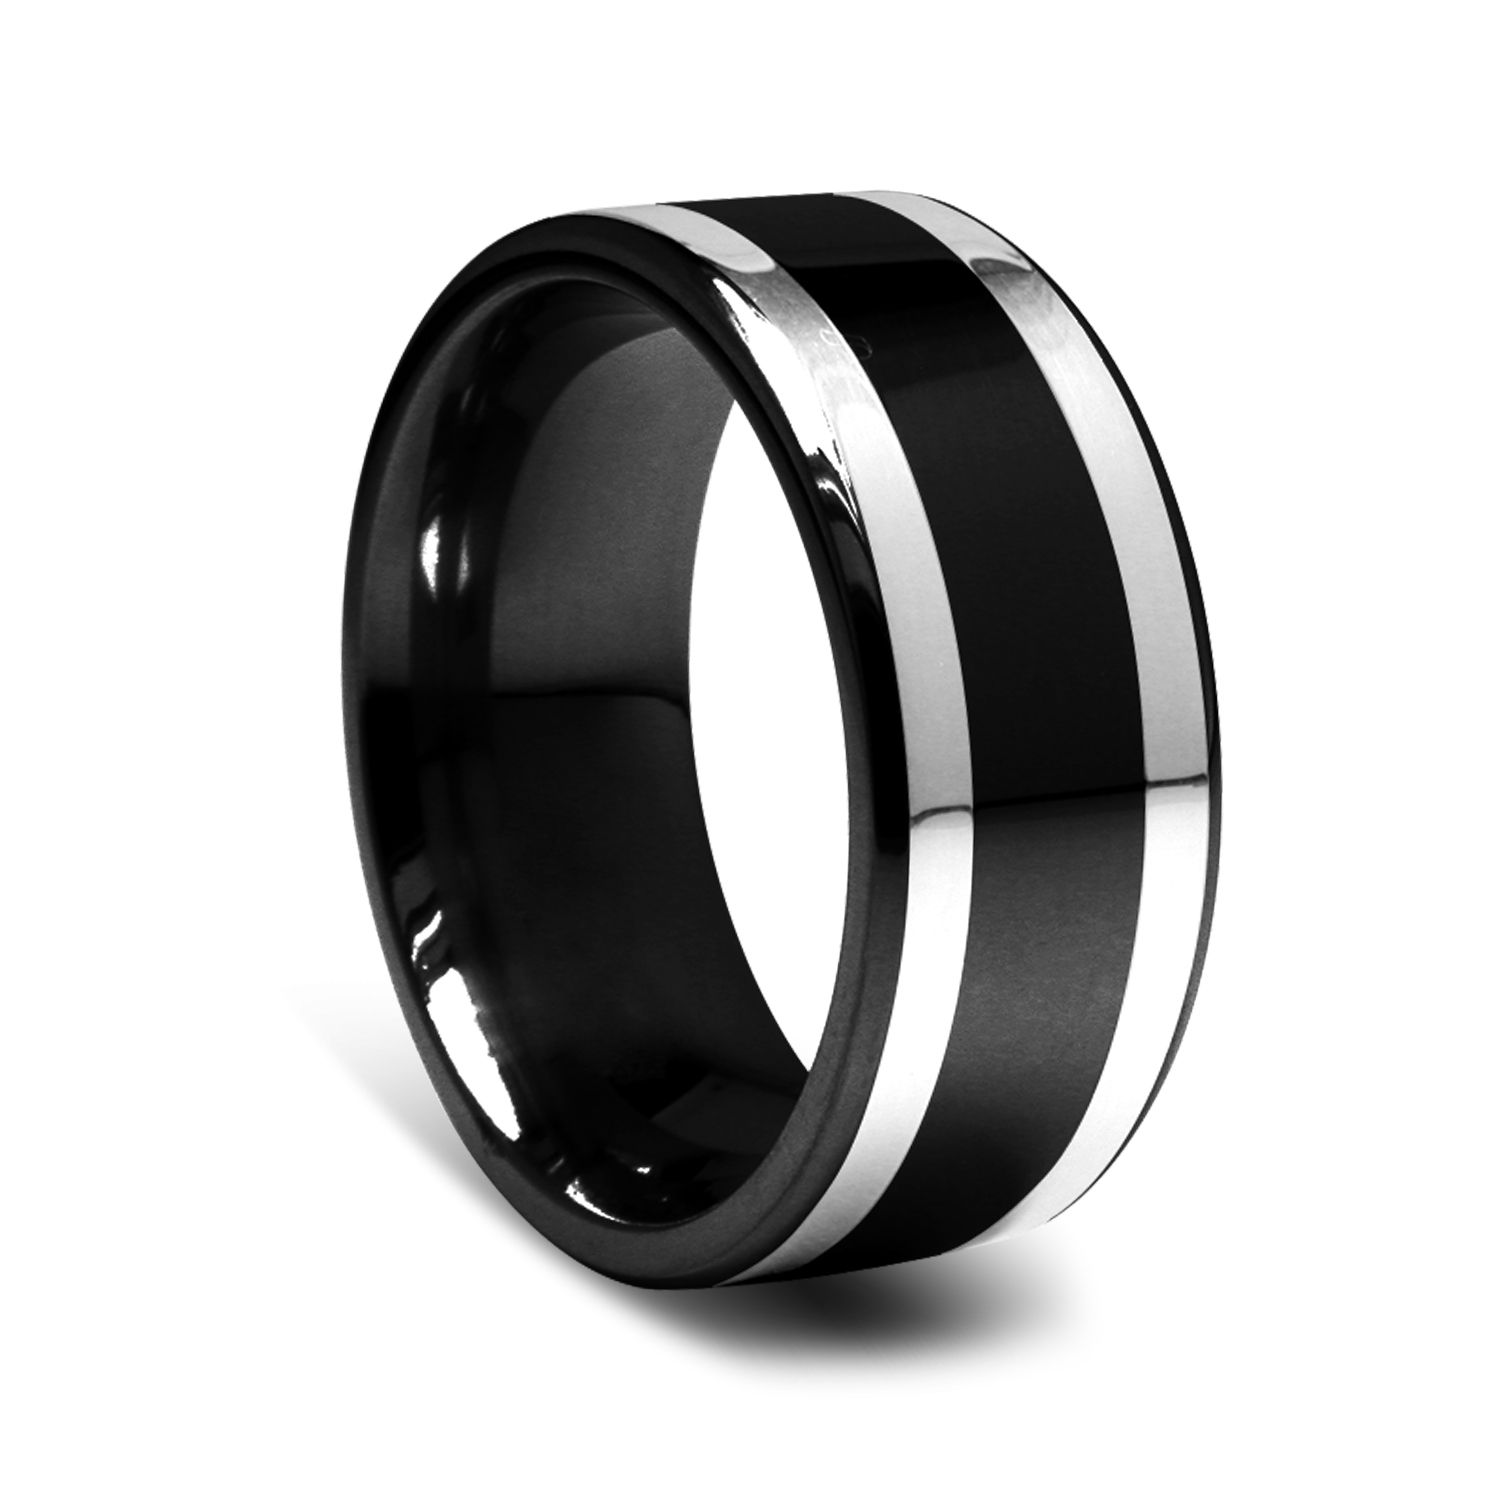 9mm black titanium men's ring with silver inlay. a great look